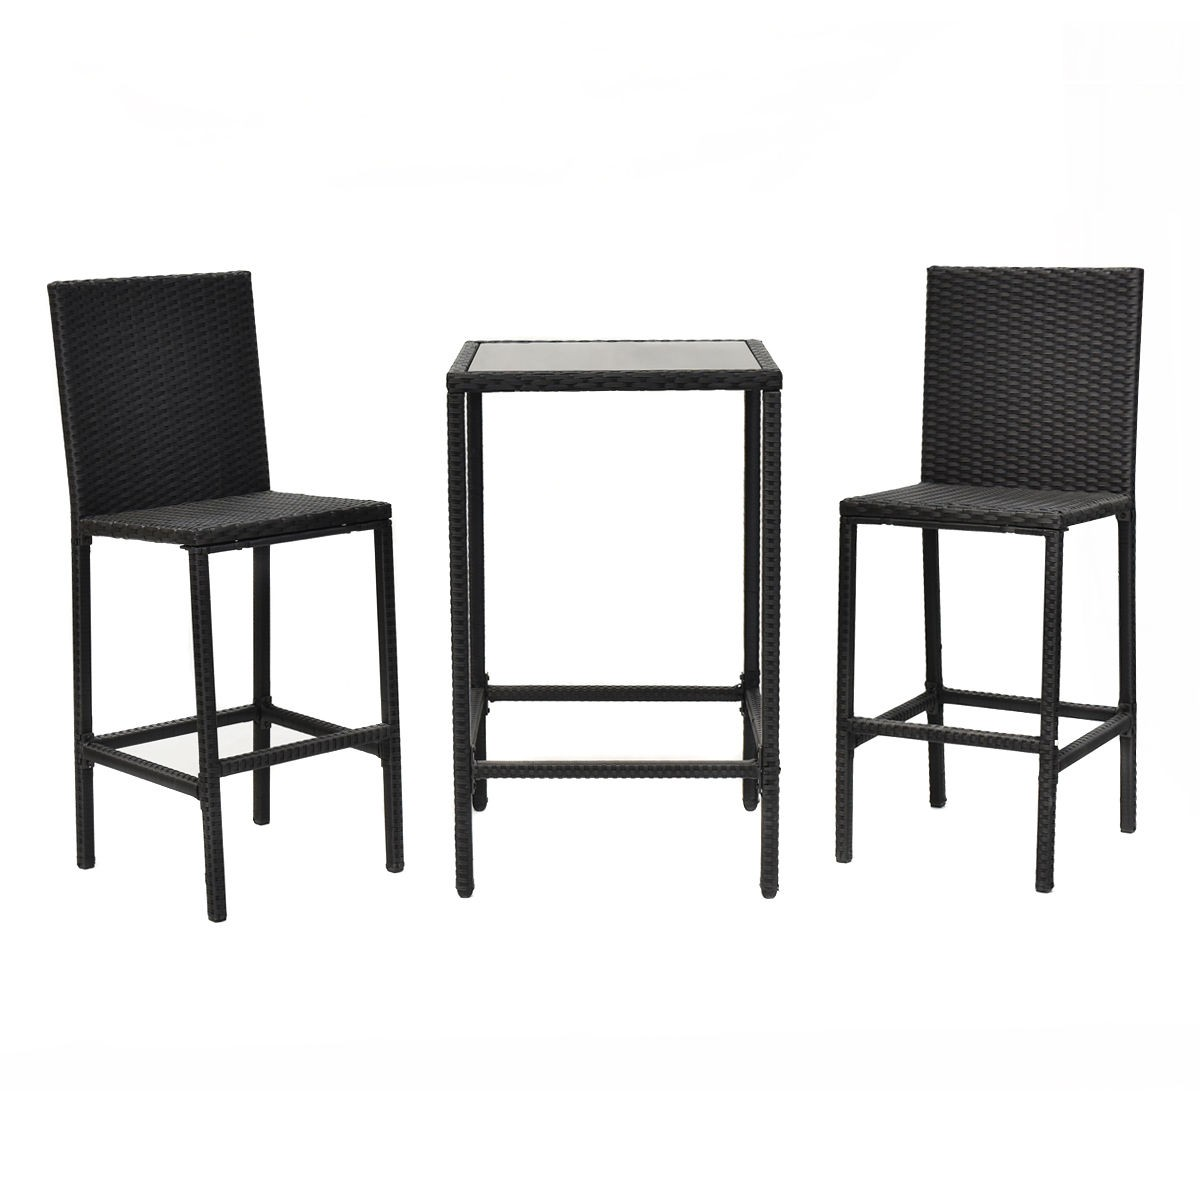 3pcs garden patio rattan wicker outdoor dining set table. Black Bedroom Furniture Sets. Home Design Ideas